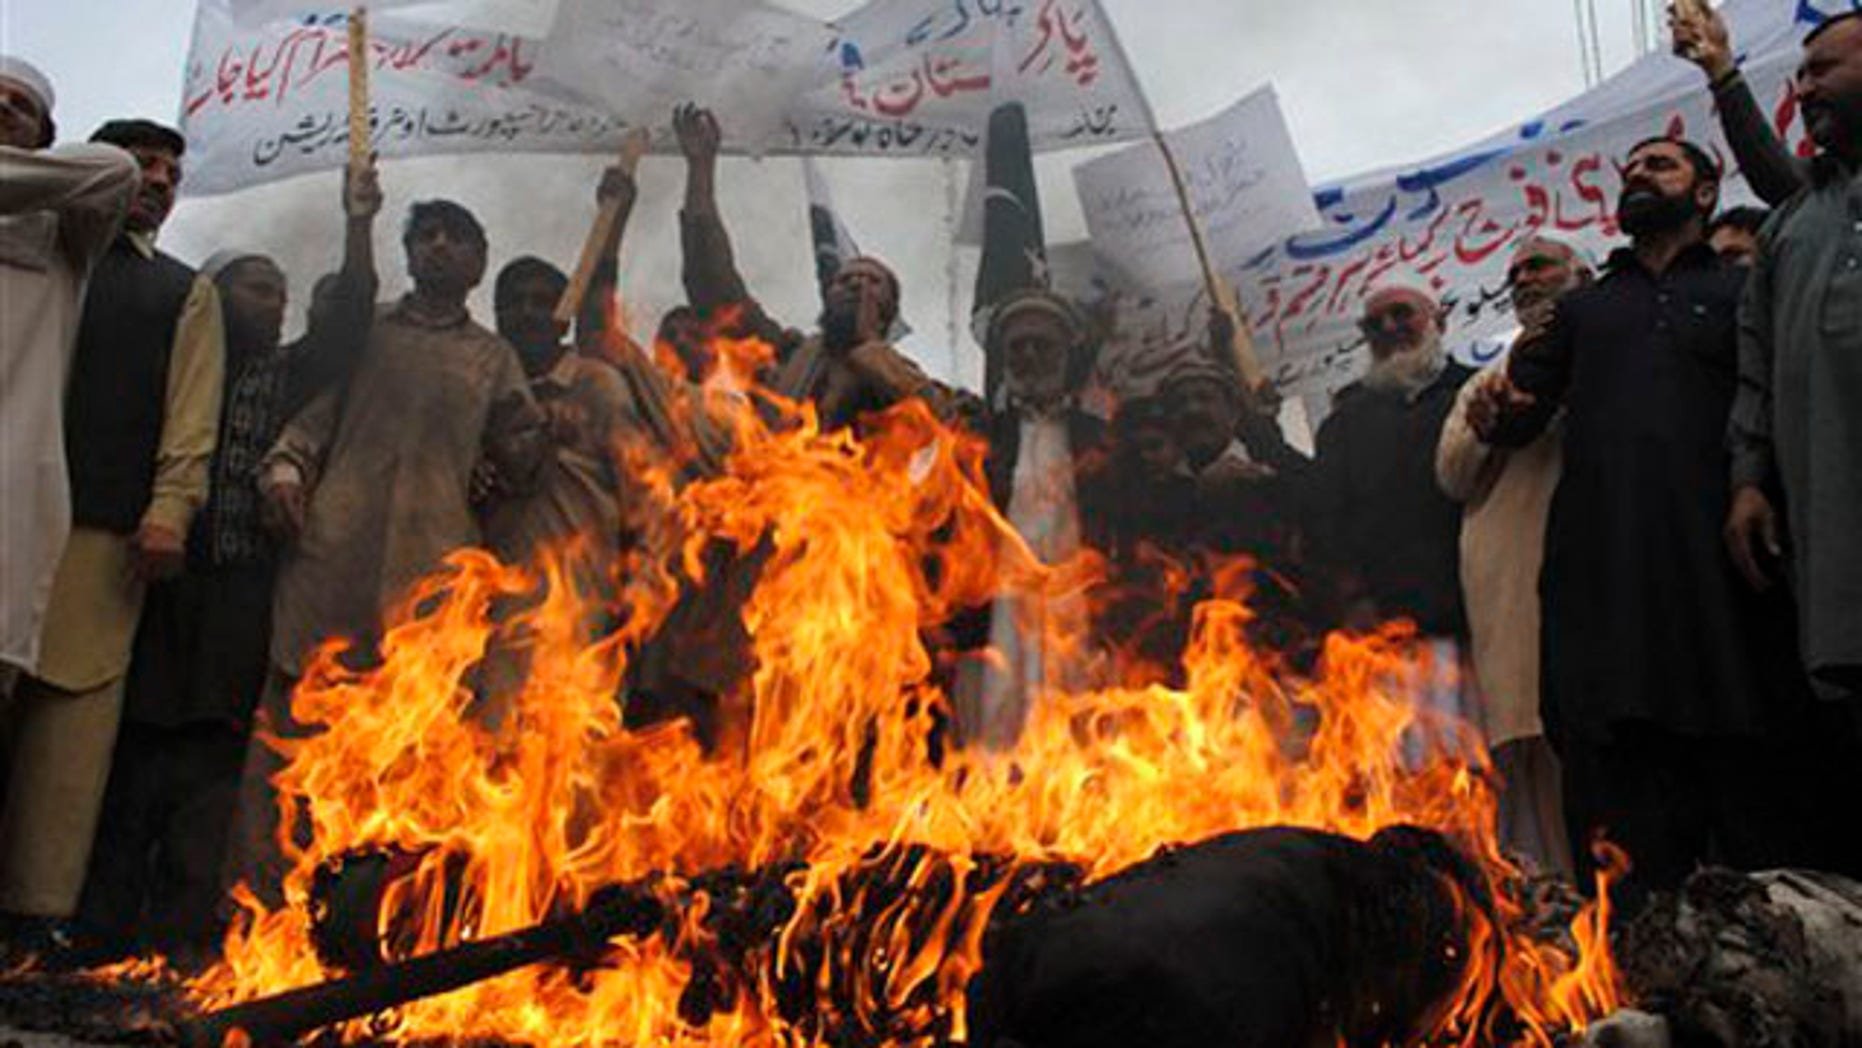 Dec. 1, 2011: Pakistani protesters burn an effigy of President Obama during a protest to condemn killings of Pakistani troops in NATO airstrikes, in Peshawar, Pakistan.